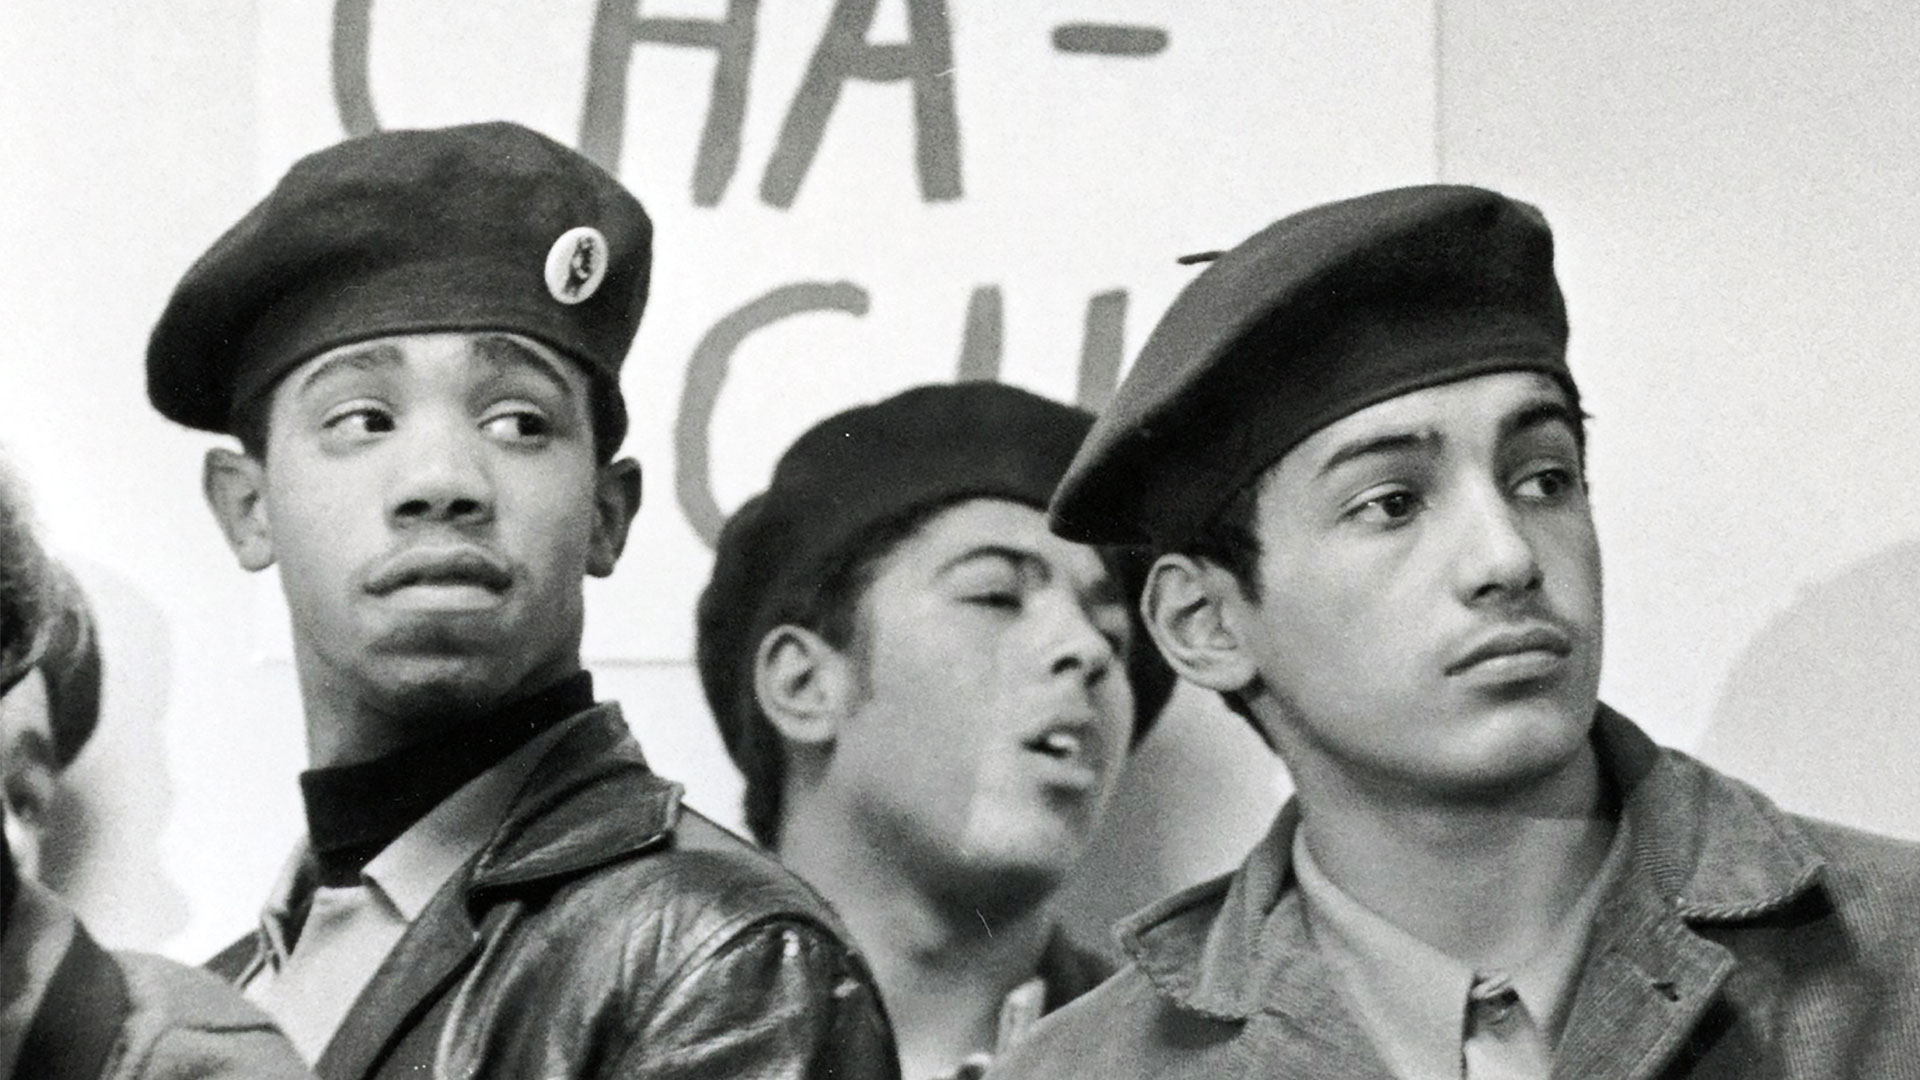 From First Rainbow Coalition: Young Lords members protest at 18th Ave. Police Station, Chicago